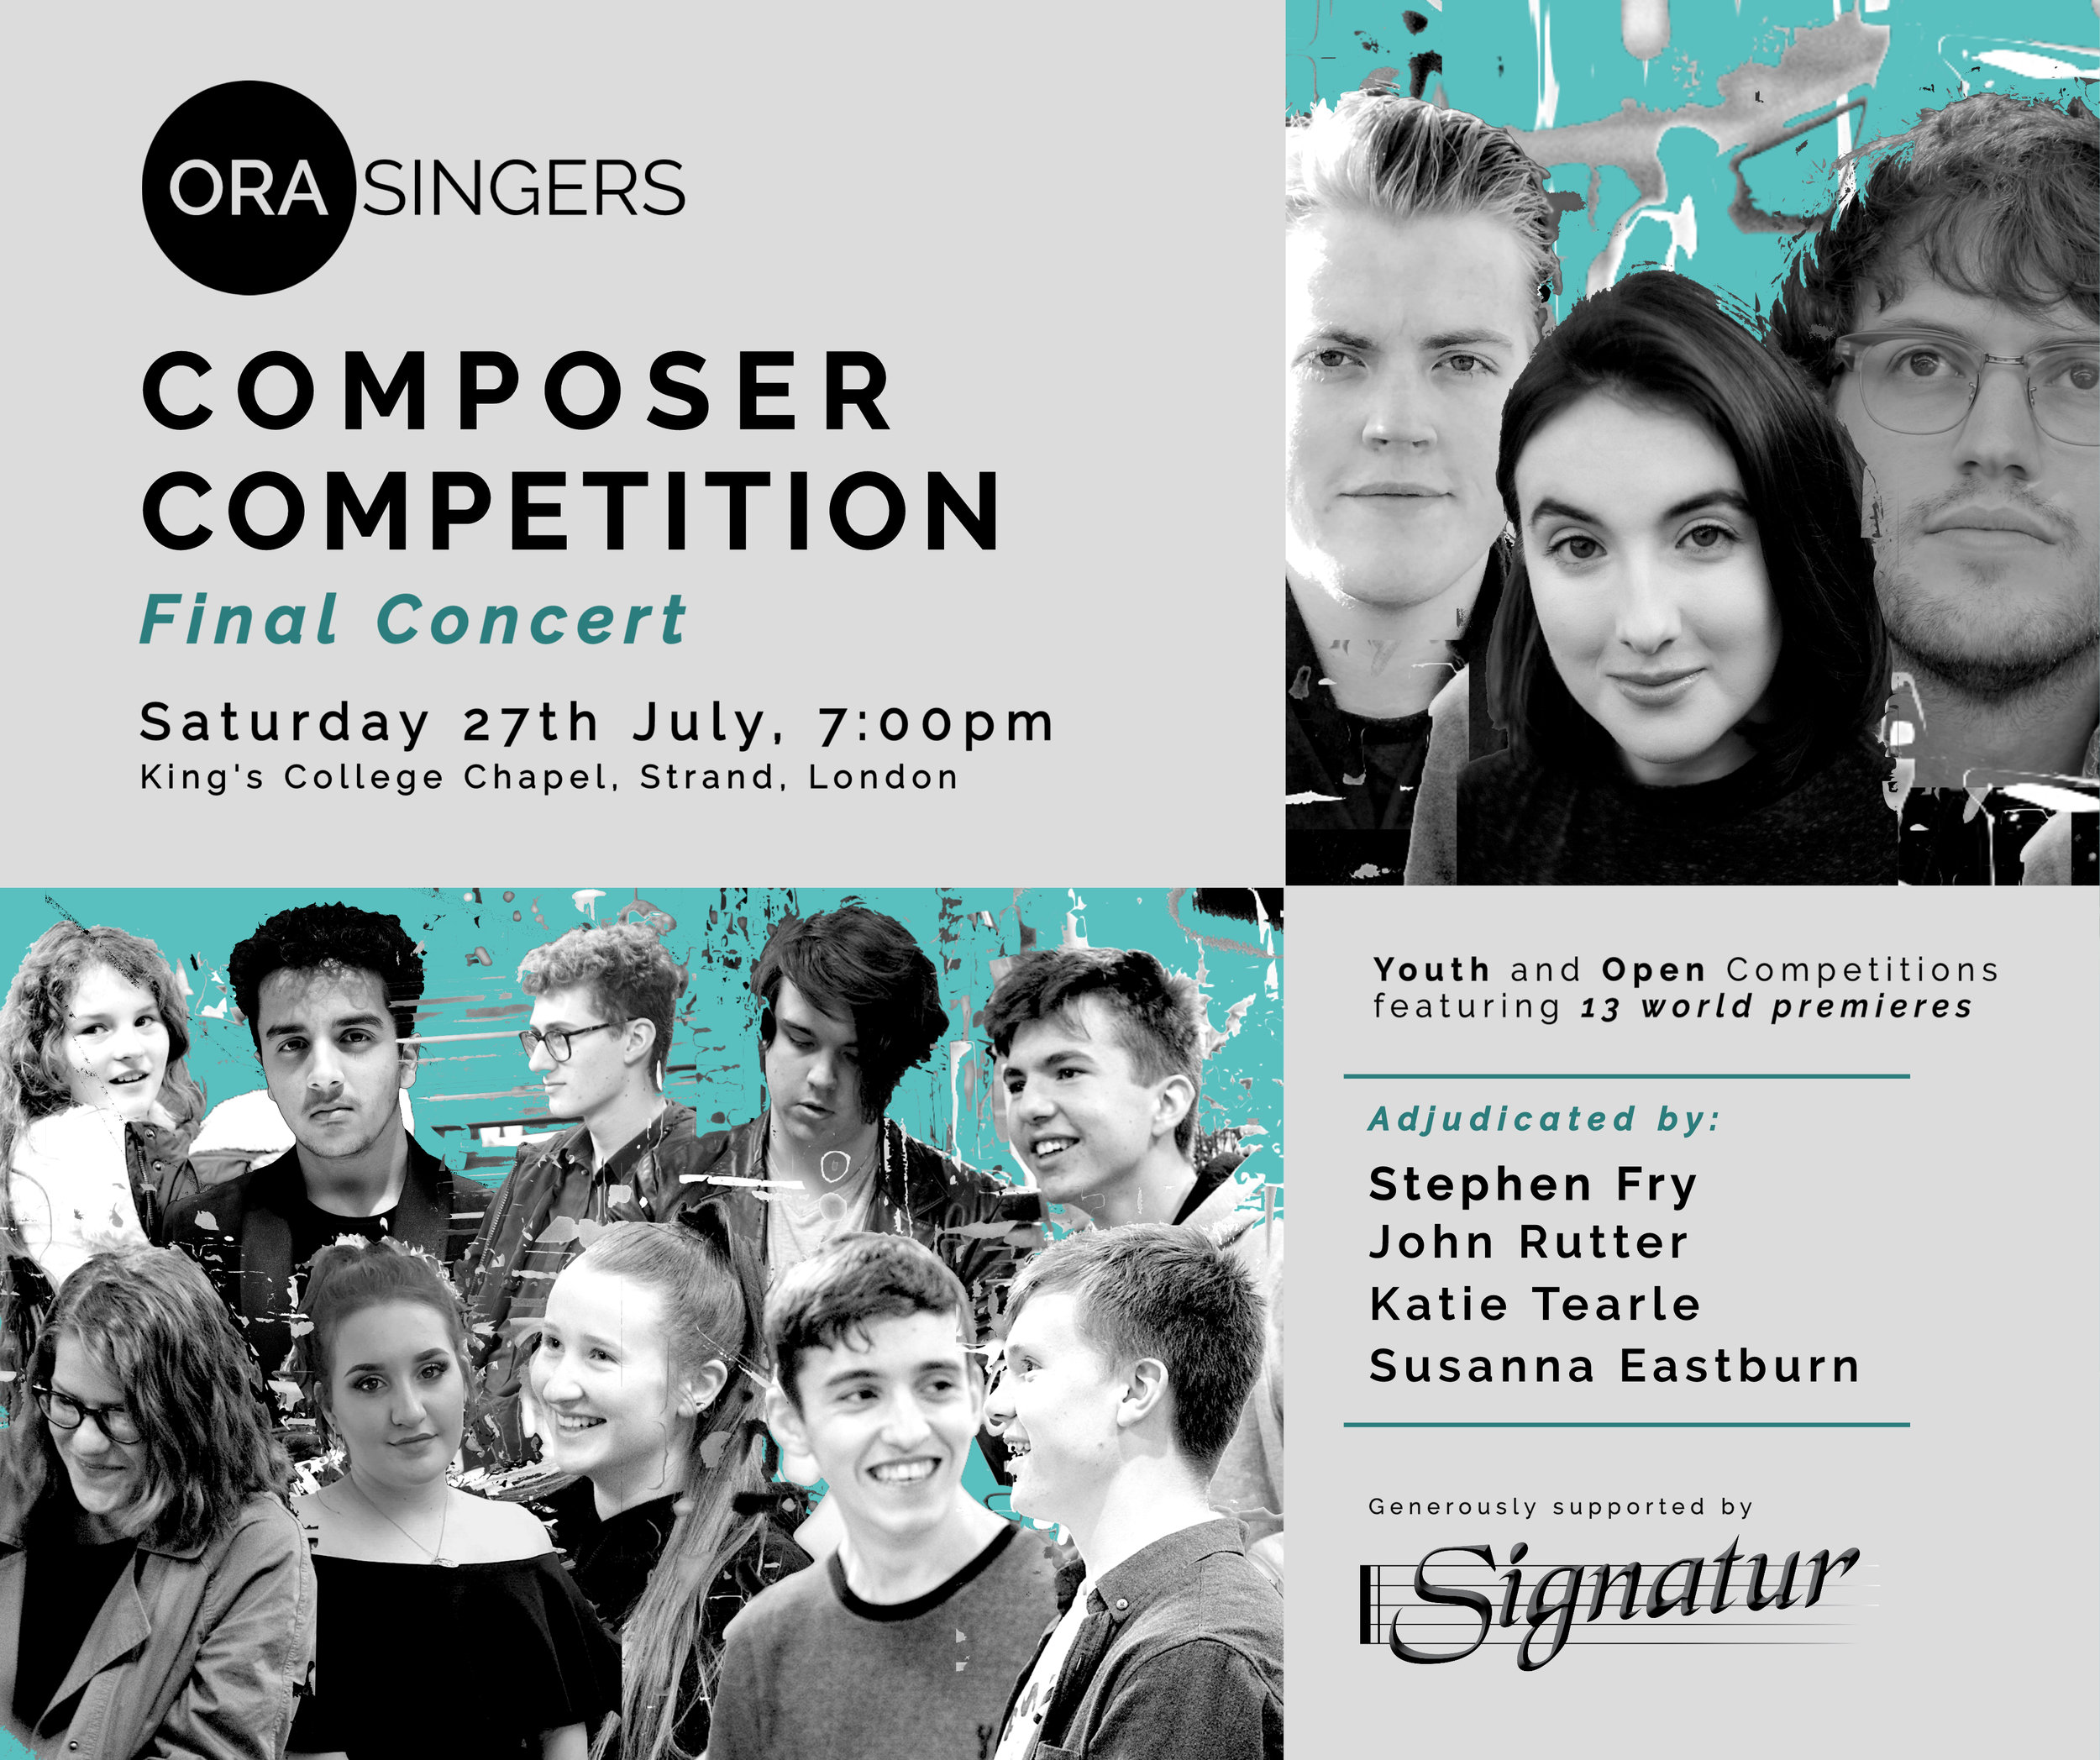 ORA Singers — Stephen Fry Chairs Composer Competition Final